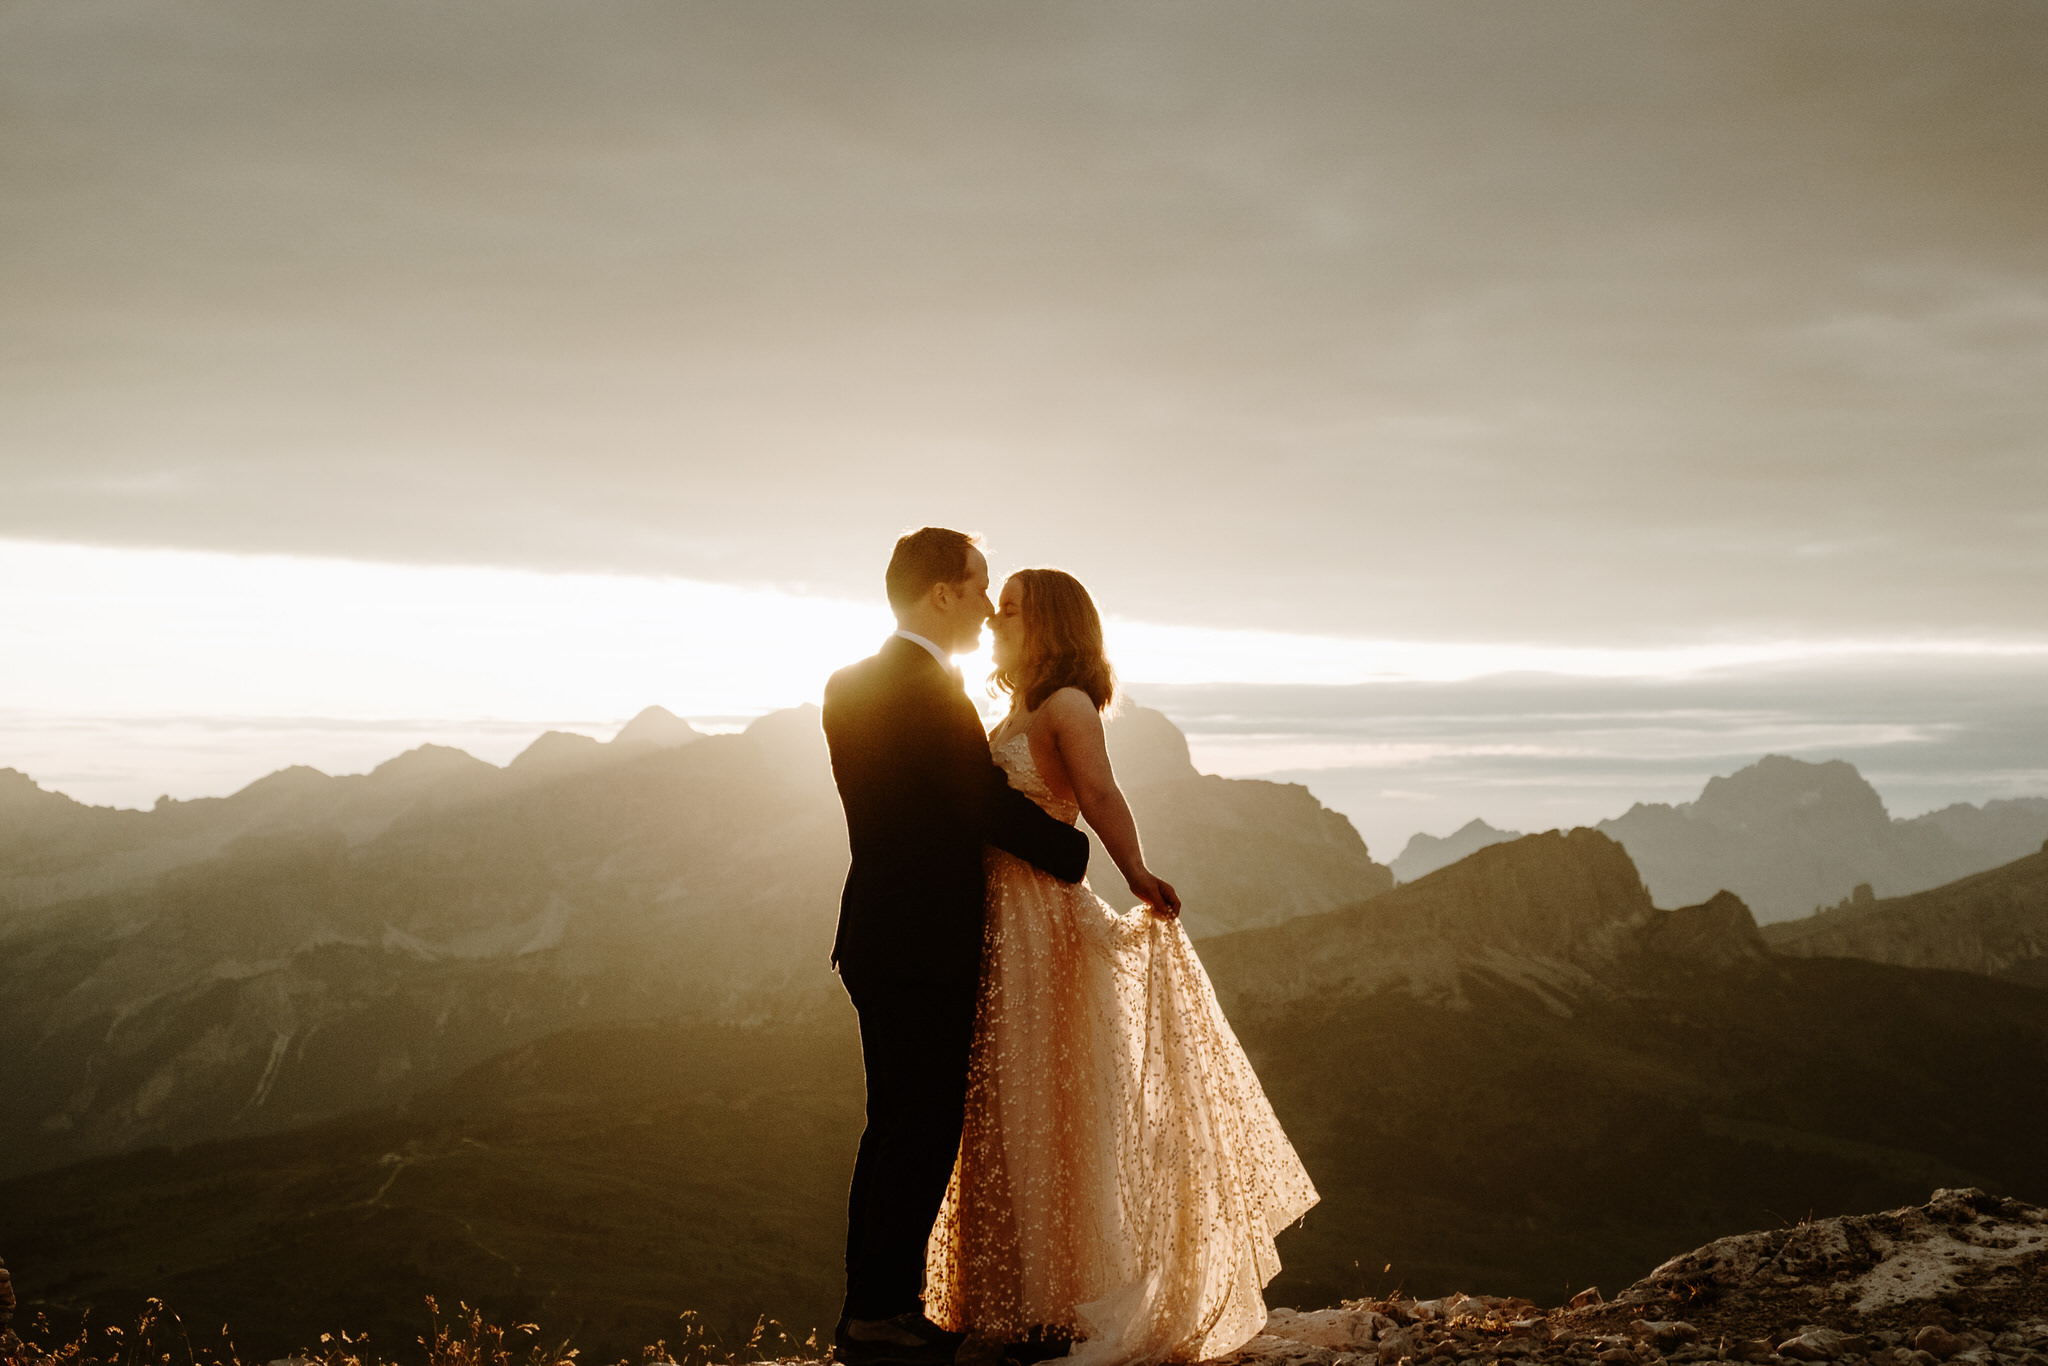 A wedding couple is holding each other and standing on top of the mountain.